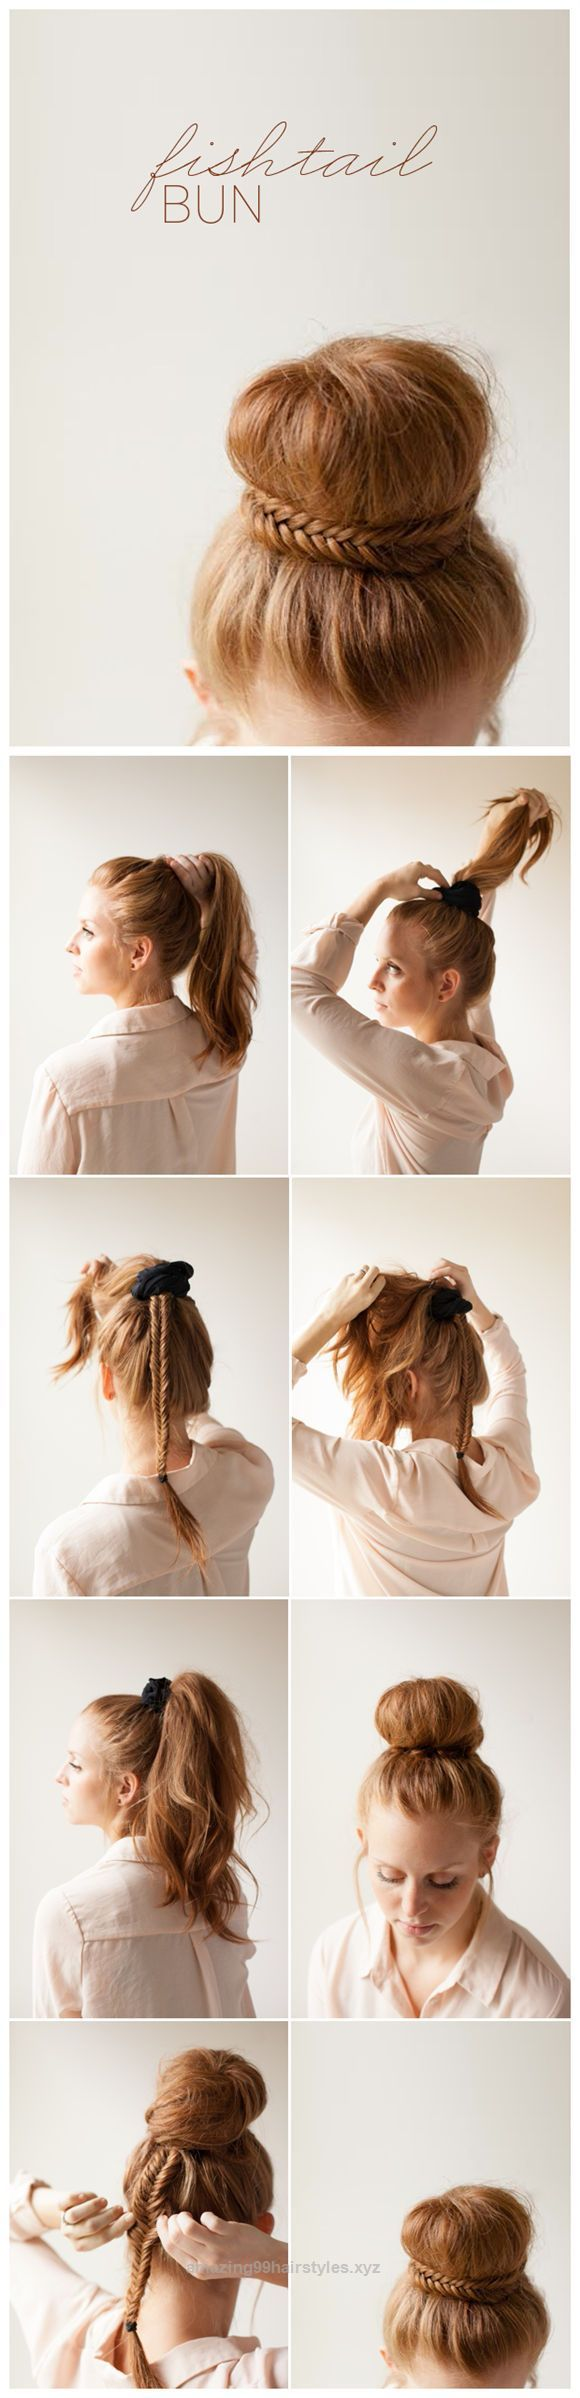 Unbelievable DIY Hairstyles: Braided Fishtail Bun Updo Tutorial  The post  DIY Hairstyles: Braided Fishtail Bun Updo Tutorial…  appeared first on  Amazing Hairstyles .